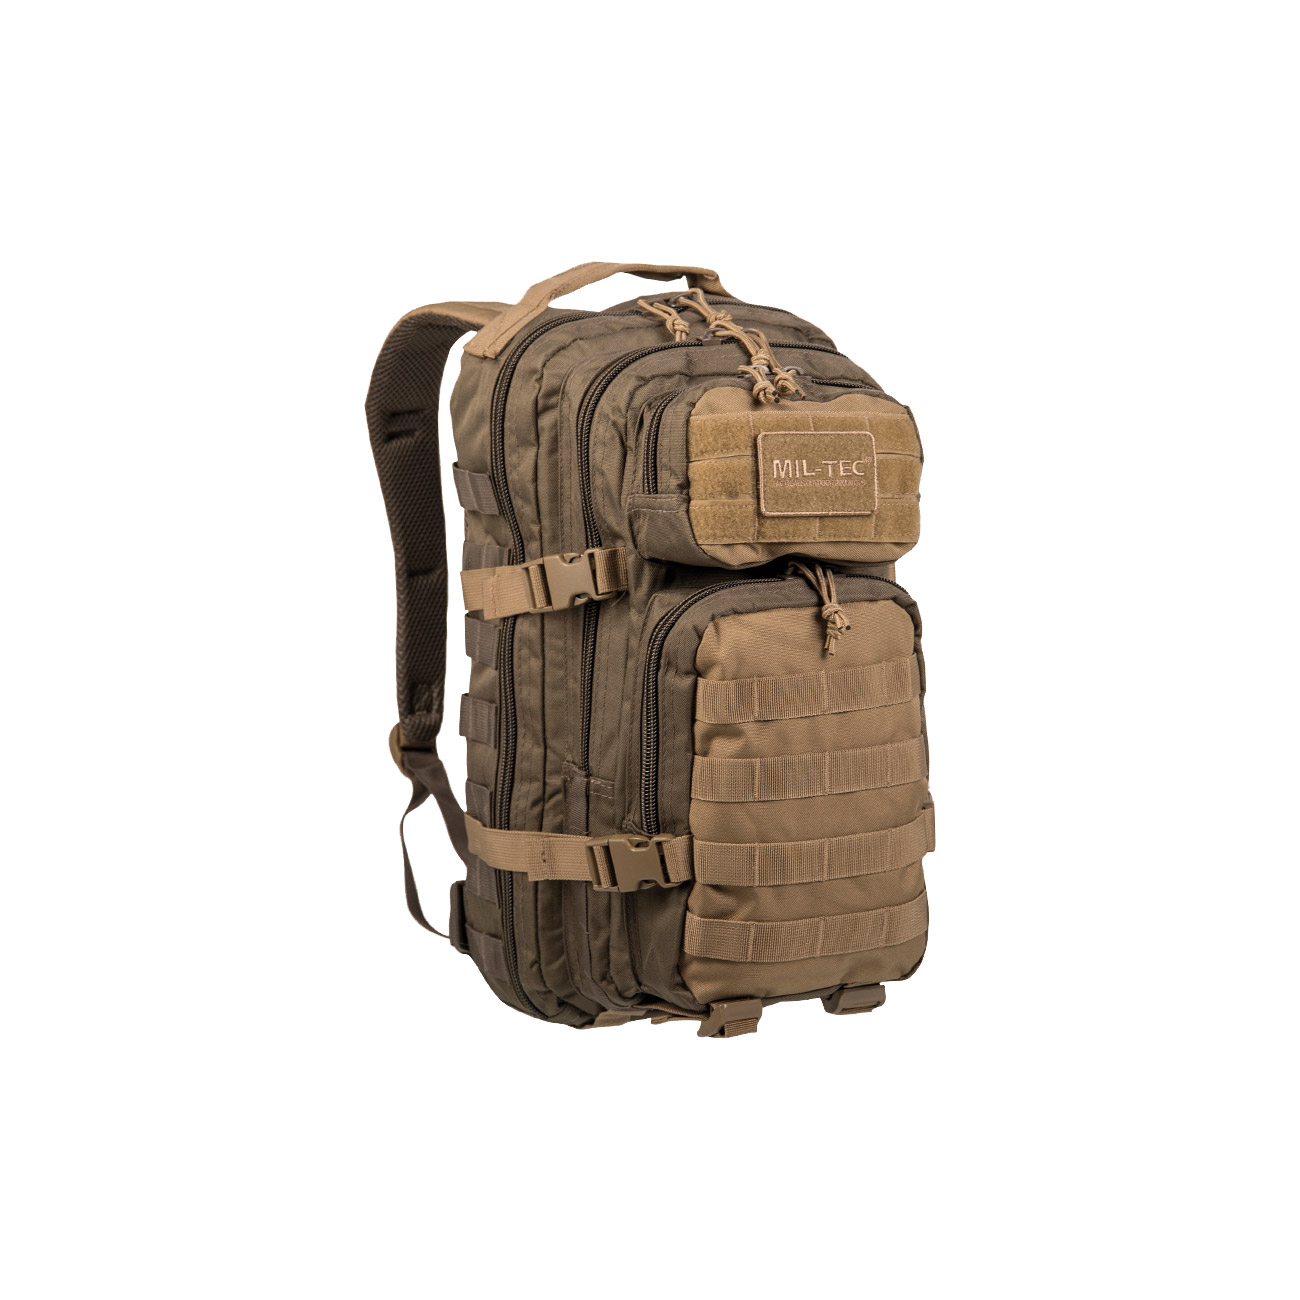 Mil-Tec Rucksack US Assault Ranger Pack 20 Liter green/coyote 0